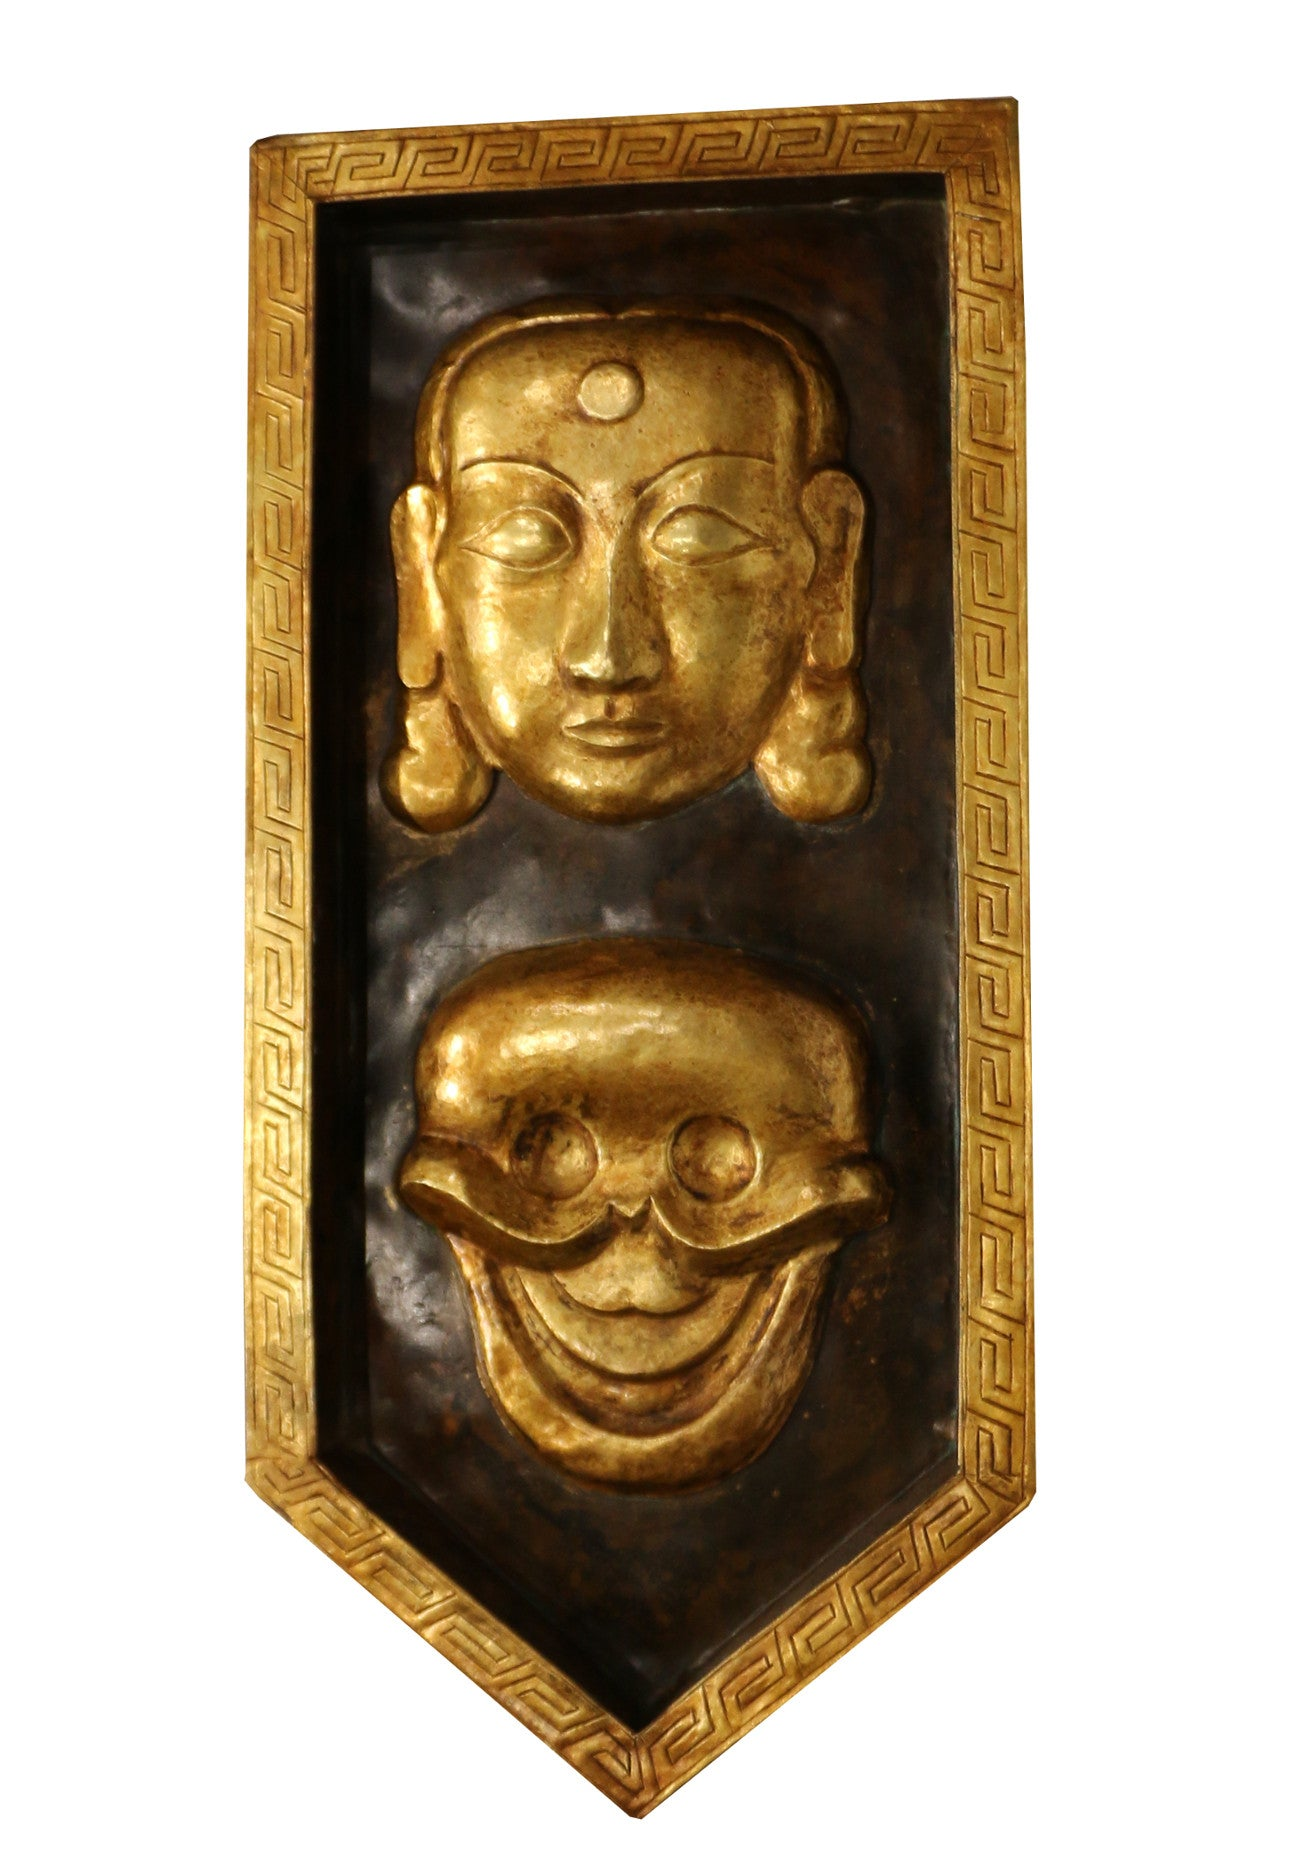 Tibetan Mask Wall decor gold gilded - Tibet Arts & Healing